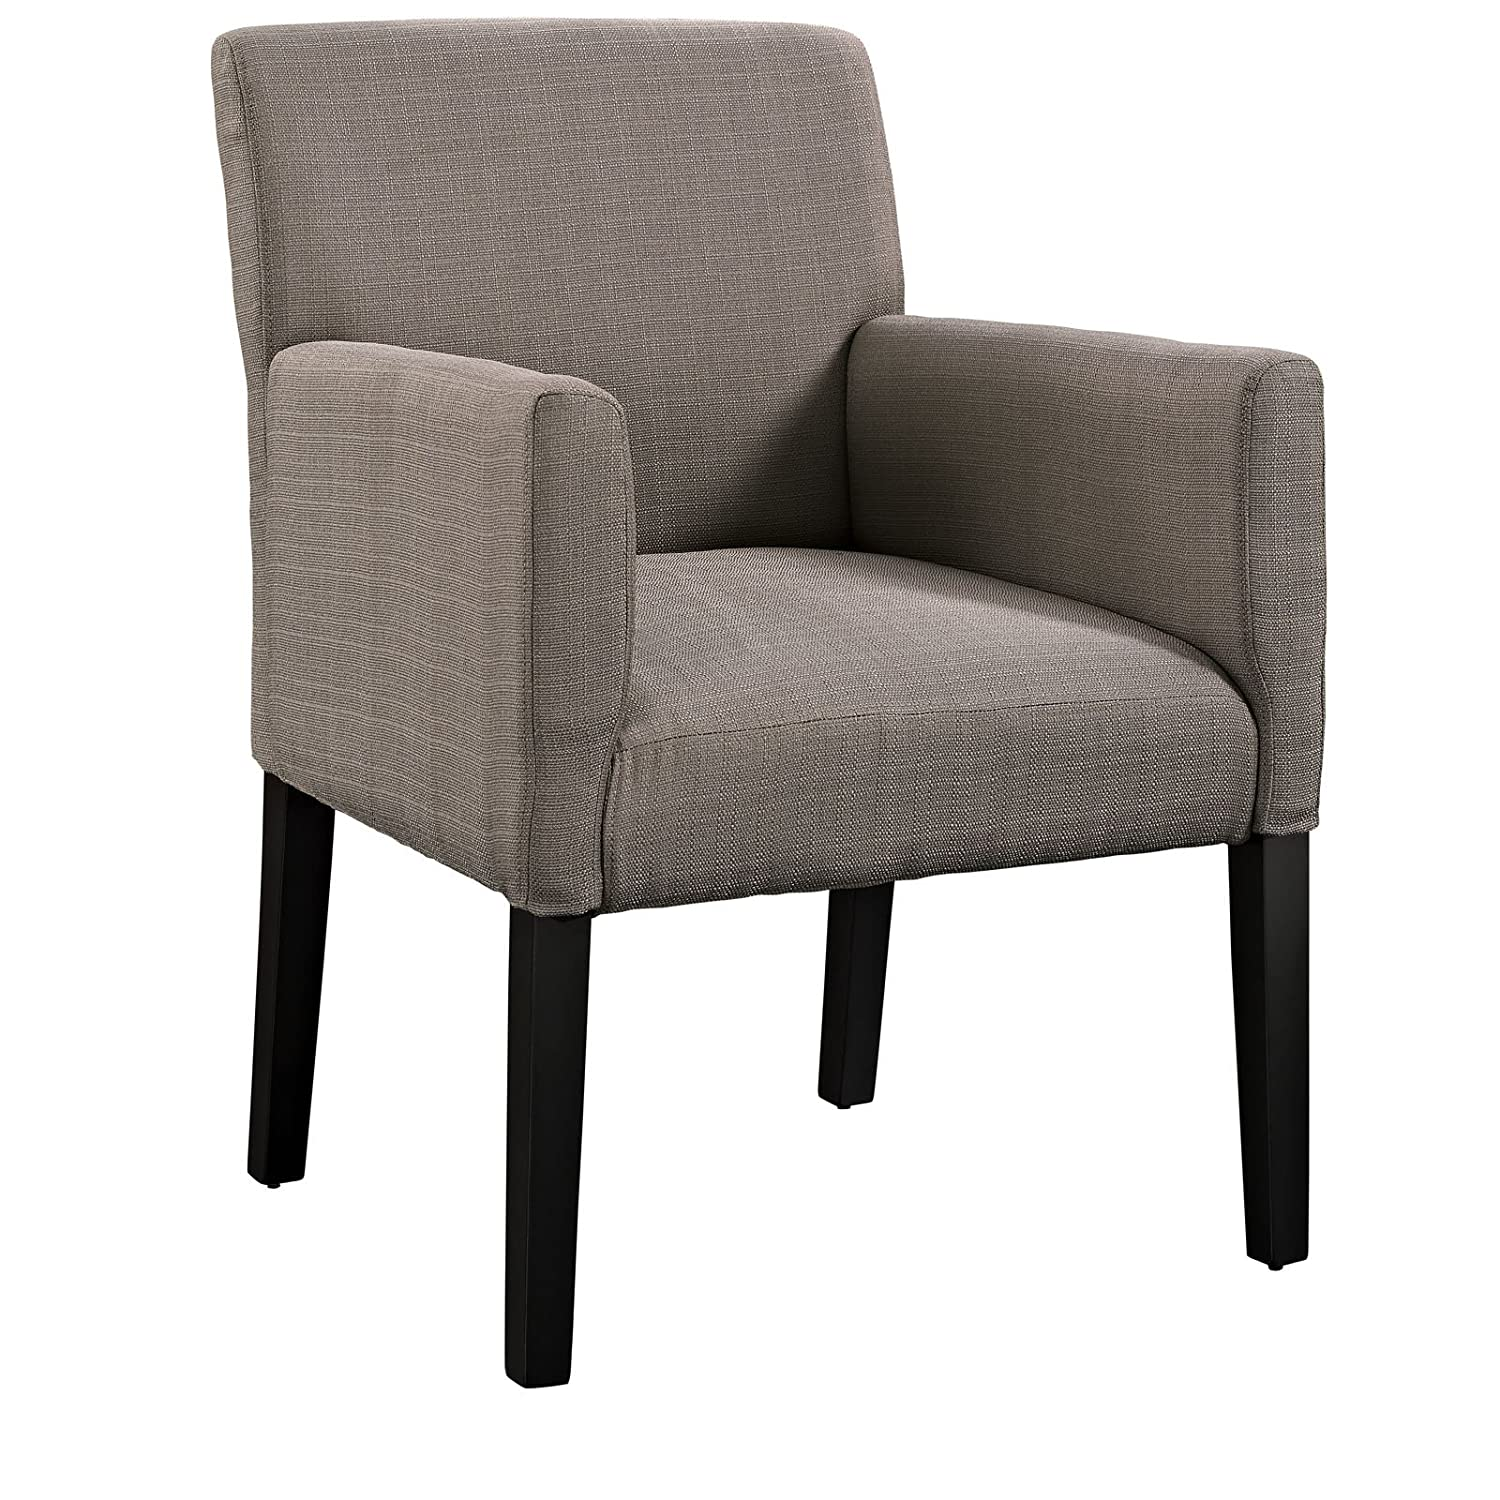 Good Amazon.com: Modway Chloe Fabric Upholstered Armchair In Gray: Kitchen U0026  Dining